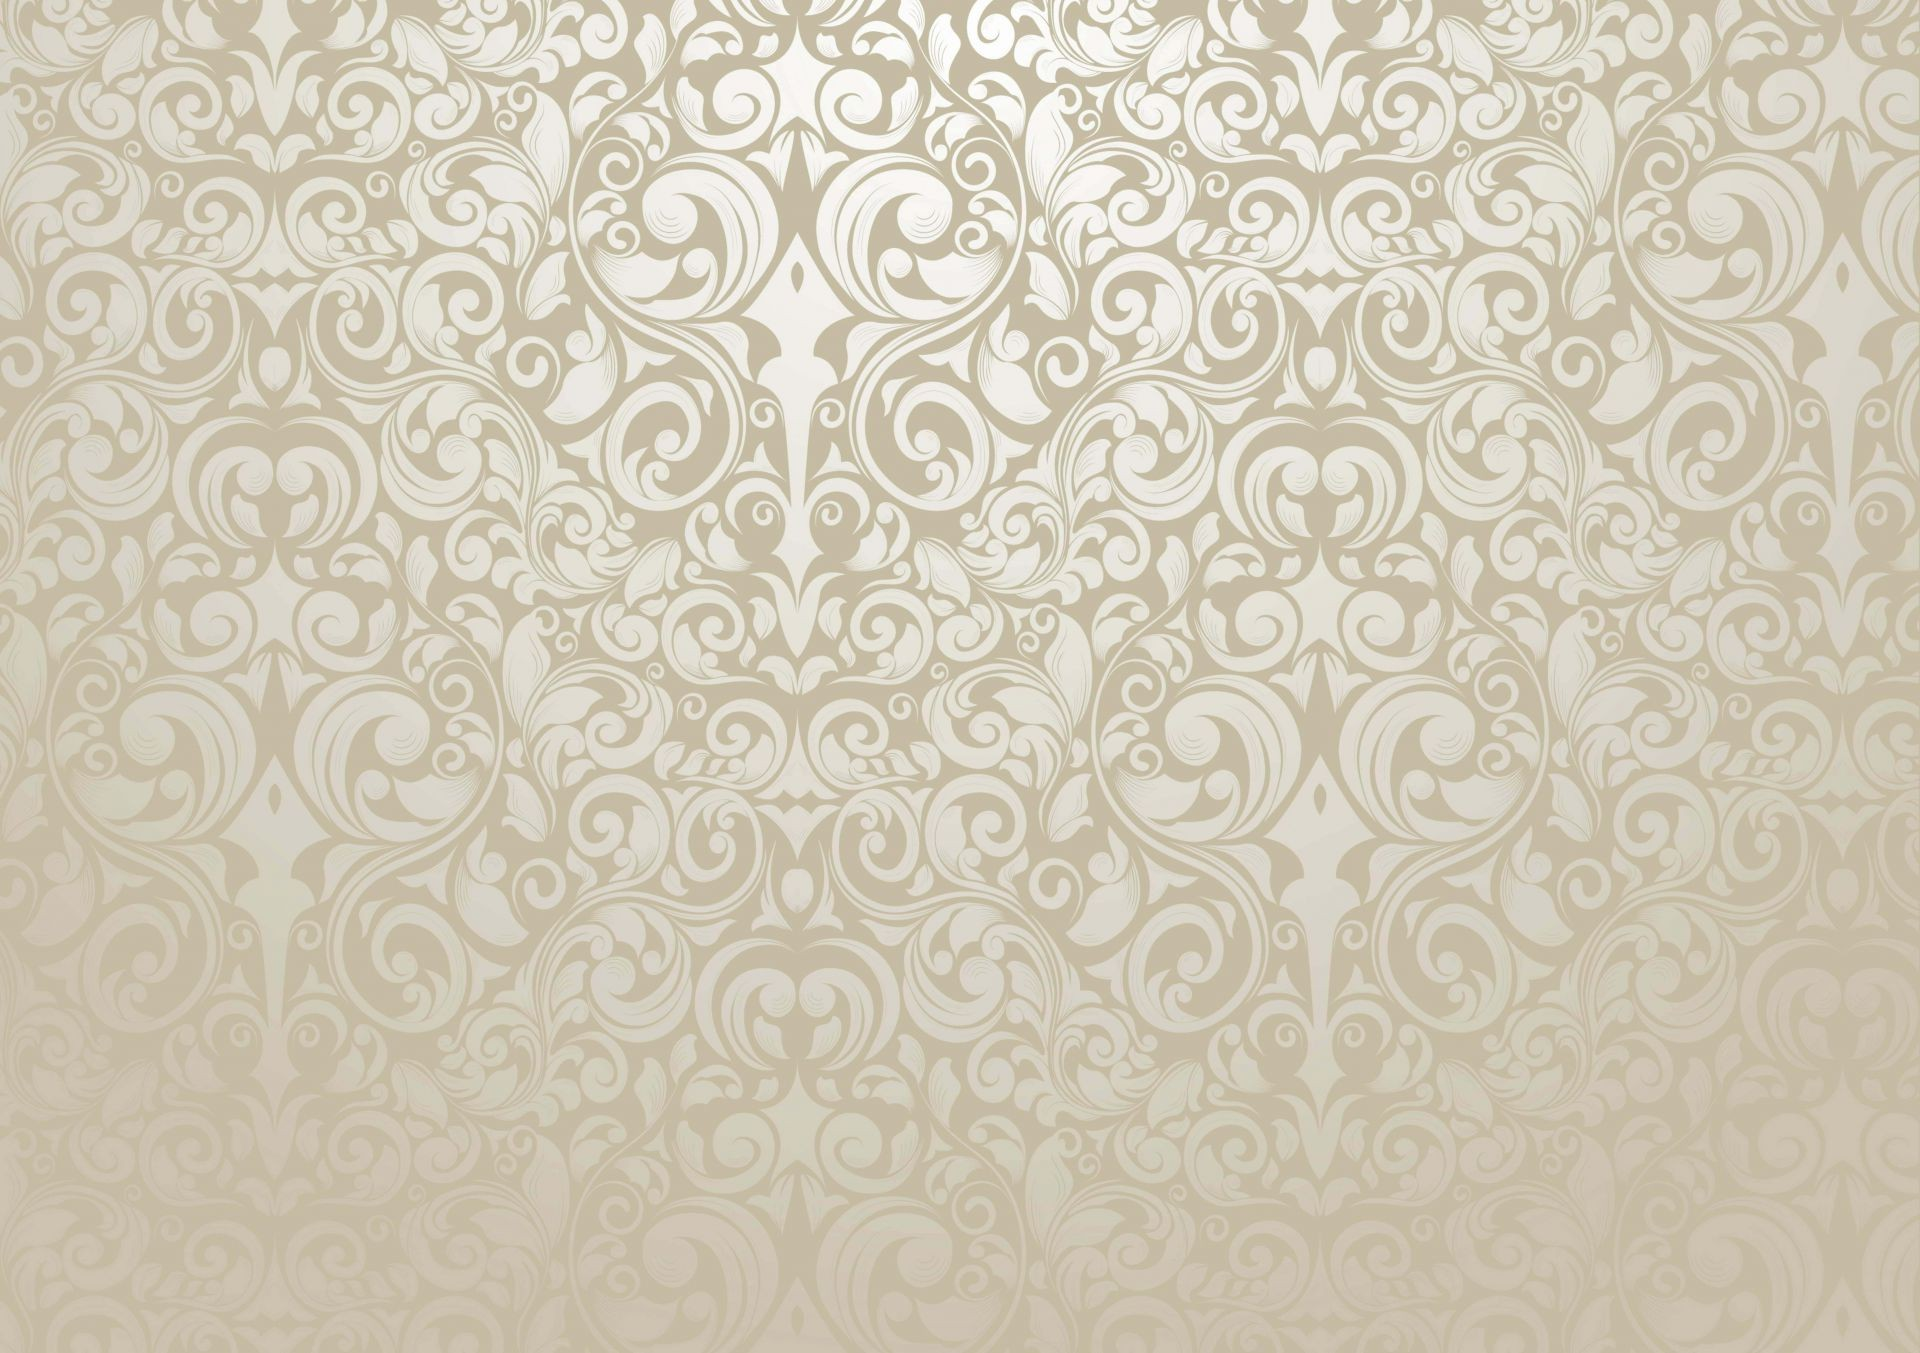 texture pattern wallpaper decoration abstract retro design floral background ornate vector vintage illustration art seamless graphic victorian fabric desktop antique